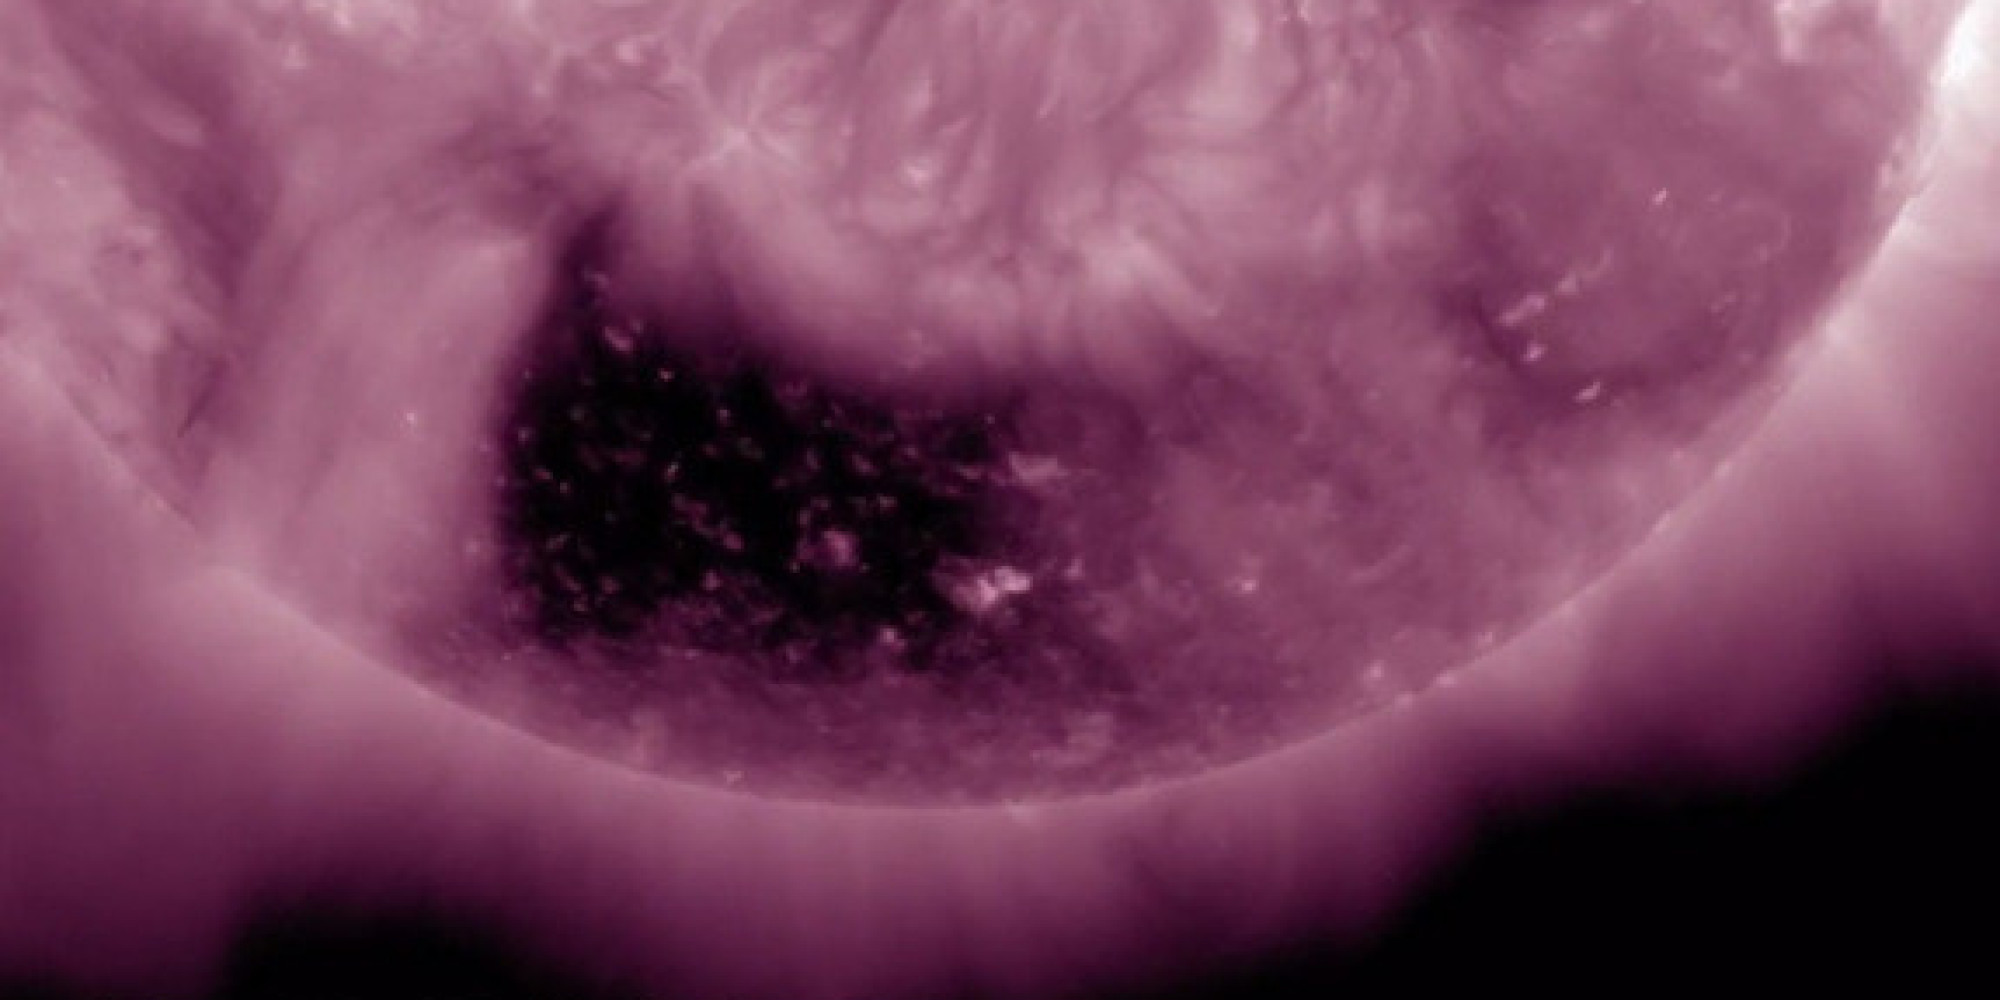 Square Hole In Sun Spotted By Nasa Spacecraft Video